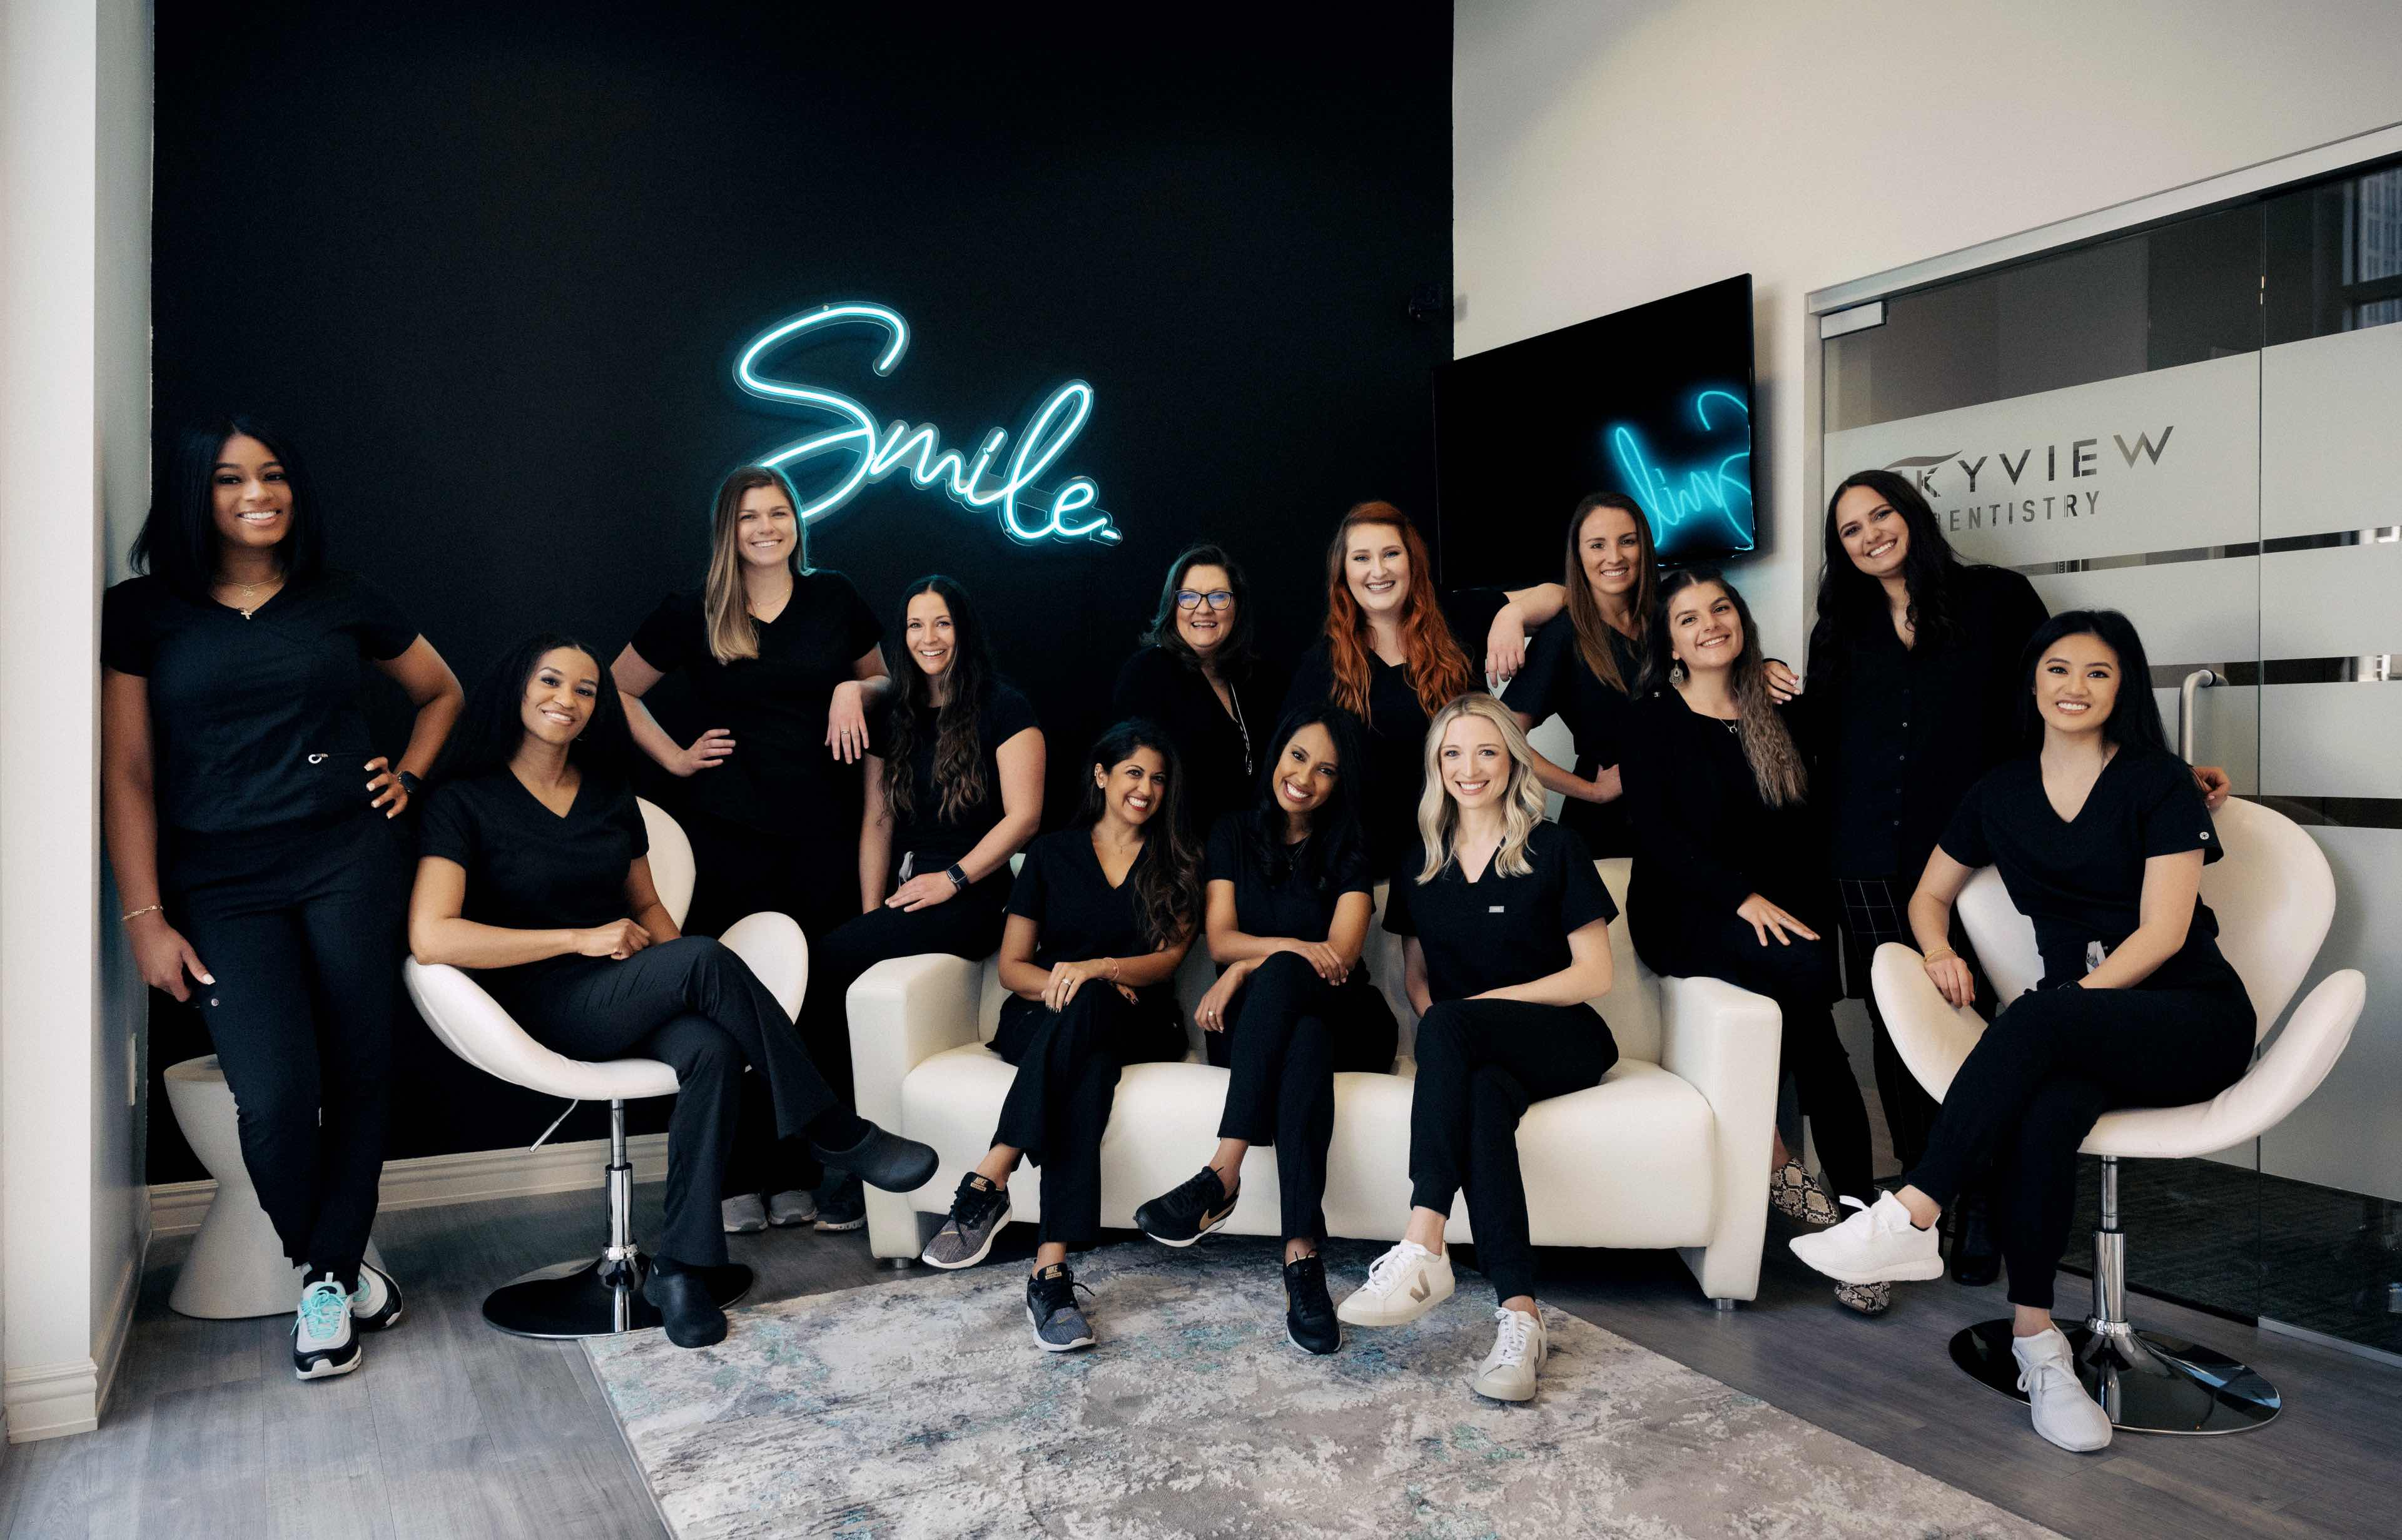 Photo of the Skyview Dentistry team, inside their office in downtown Charlotte